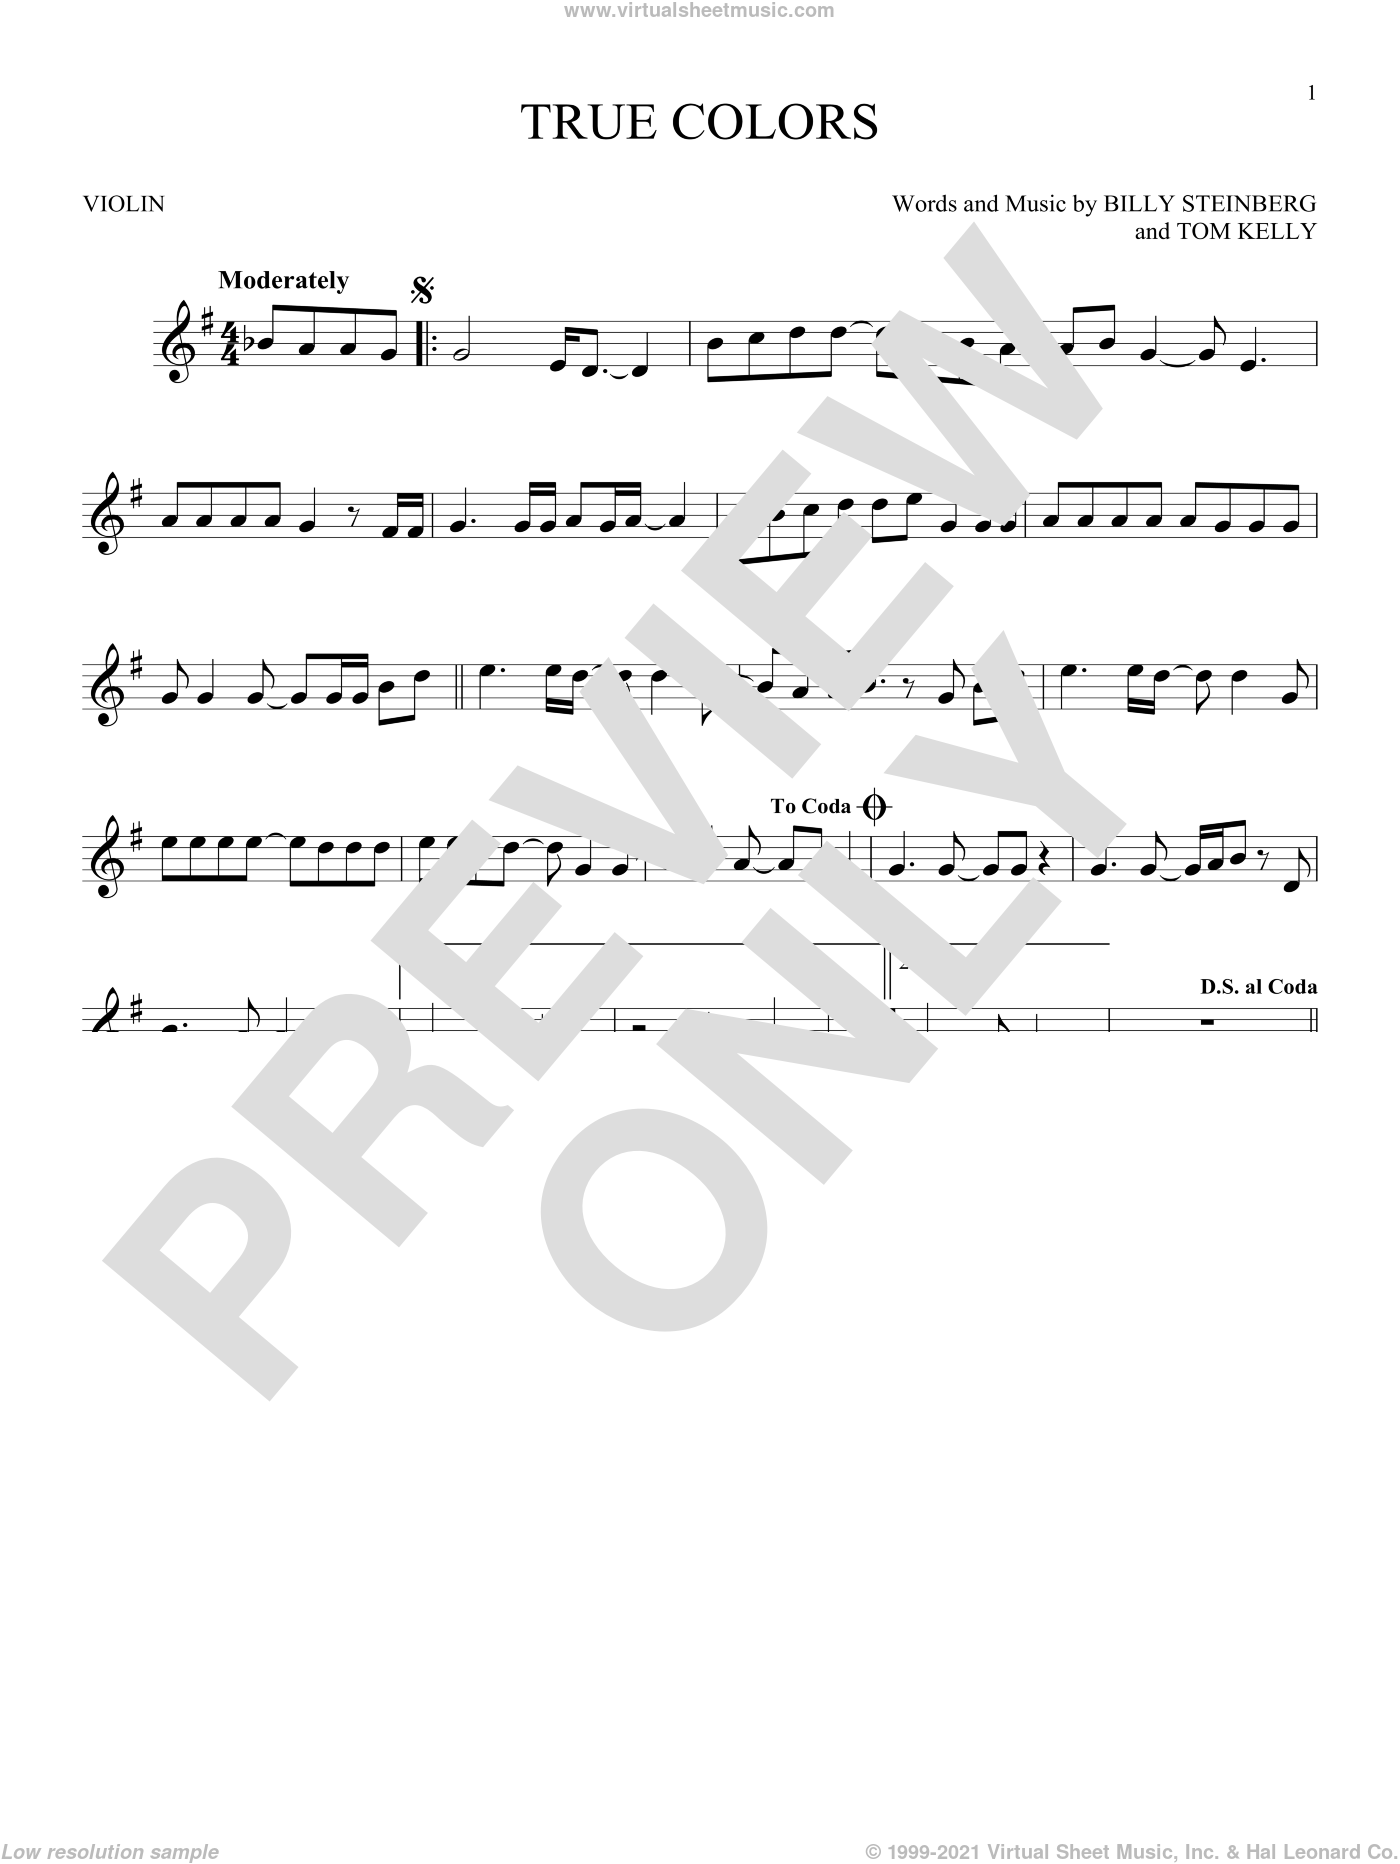 True Colors sheet music for violin solo by Cyndi Lauper, Billy Steinberg and Tom Kelly, intermediate skill level